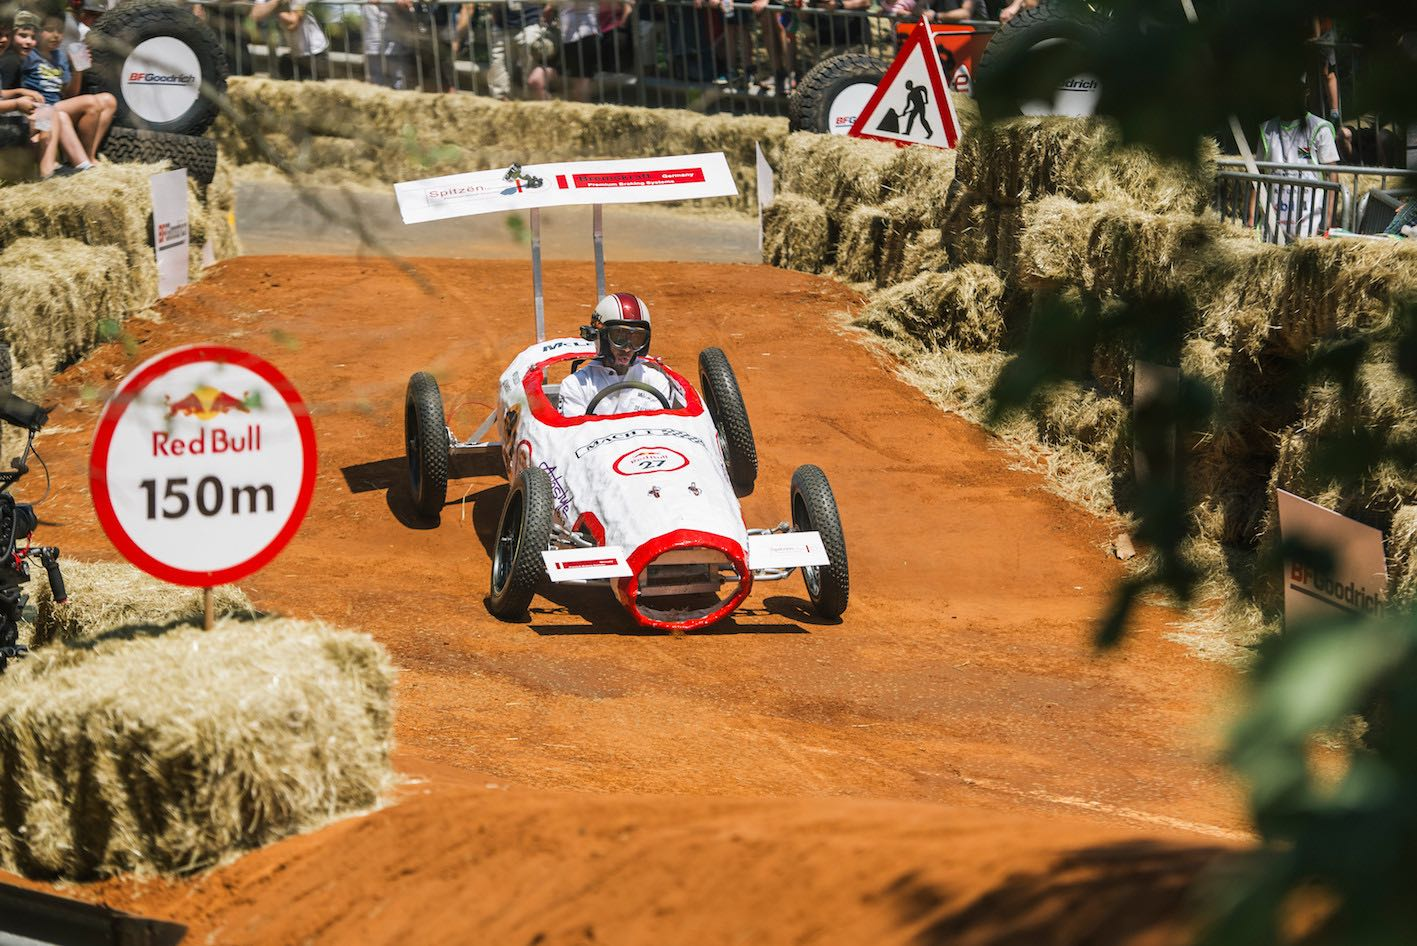 A Participant performs during Red Bull Box Cart Race